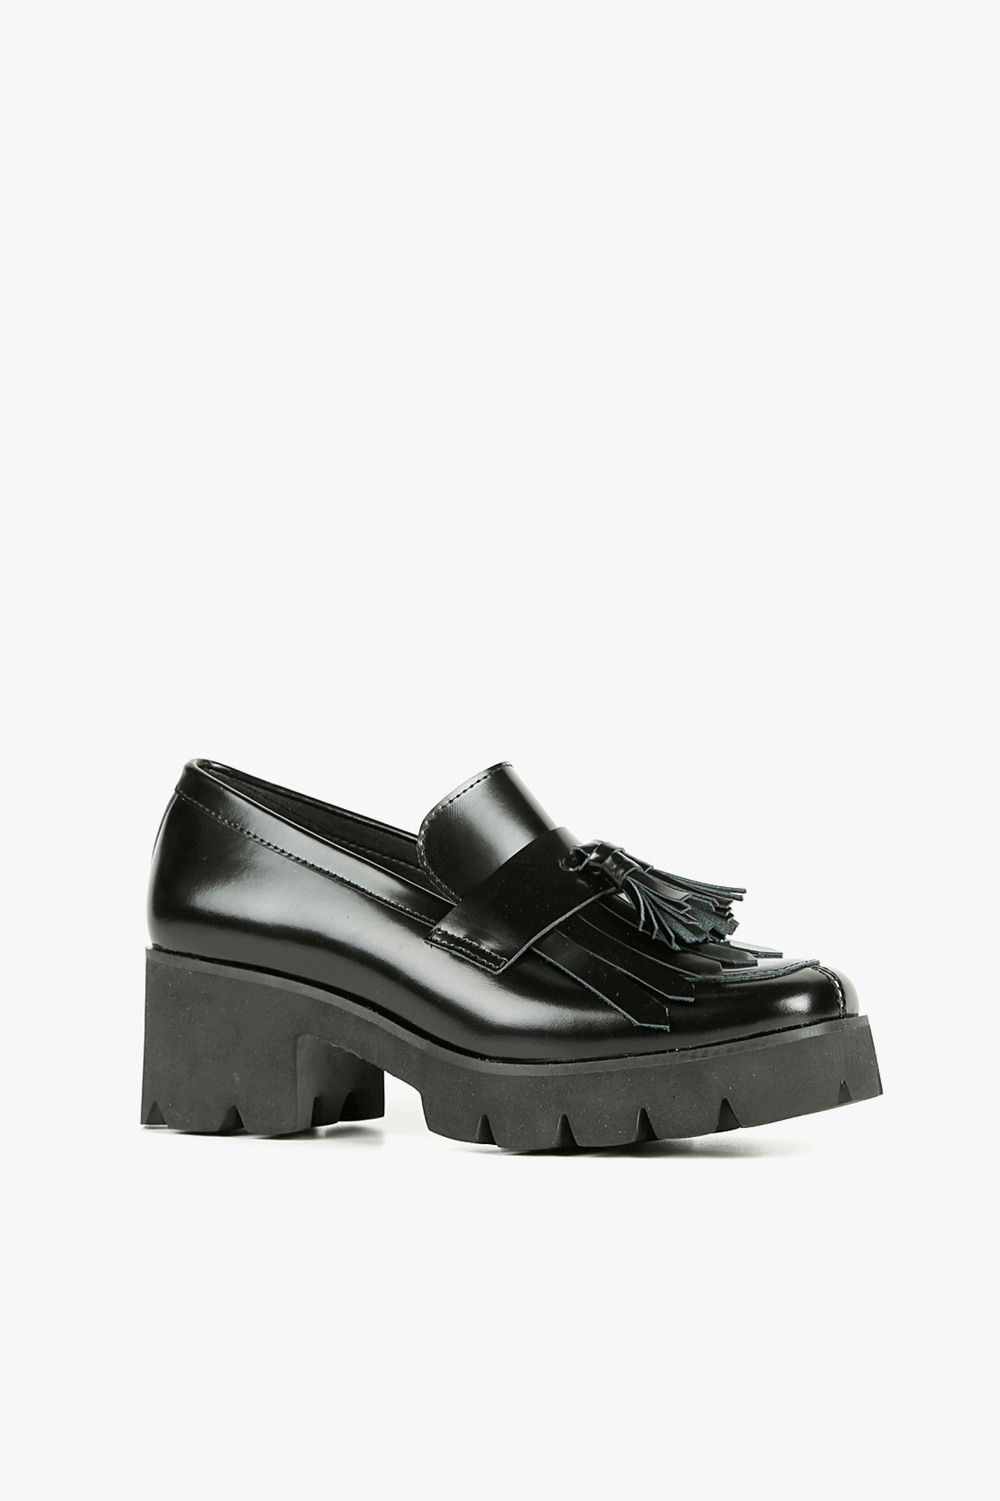 Lugg Lady Loafer